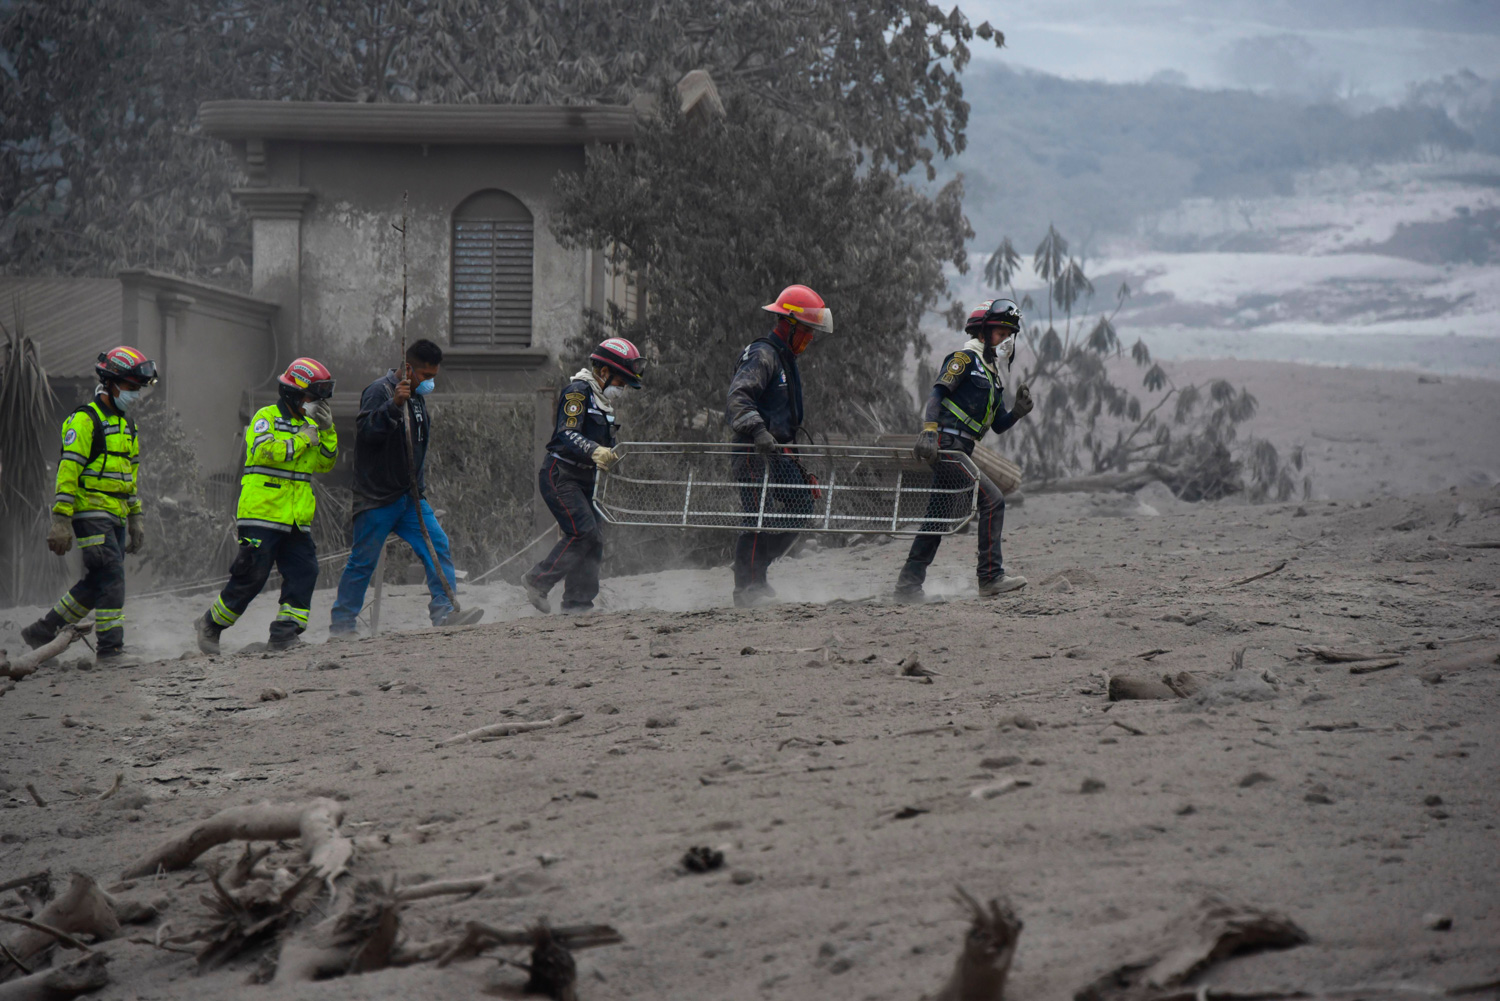 "<div class=""meta image-caption""><div class=""origin-logo origin-image none""><span>none</span></div><span class=""caption-text"">Rescuers search for victims in San Miguel Los Lotes, a village in Escuintla Department, about 35 km southwest of Guatemala City, on June 4, 2018, a day after the eruption. (JOHAN ORDONEZ/AFP/Getty Images)</span></div>"